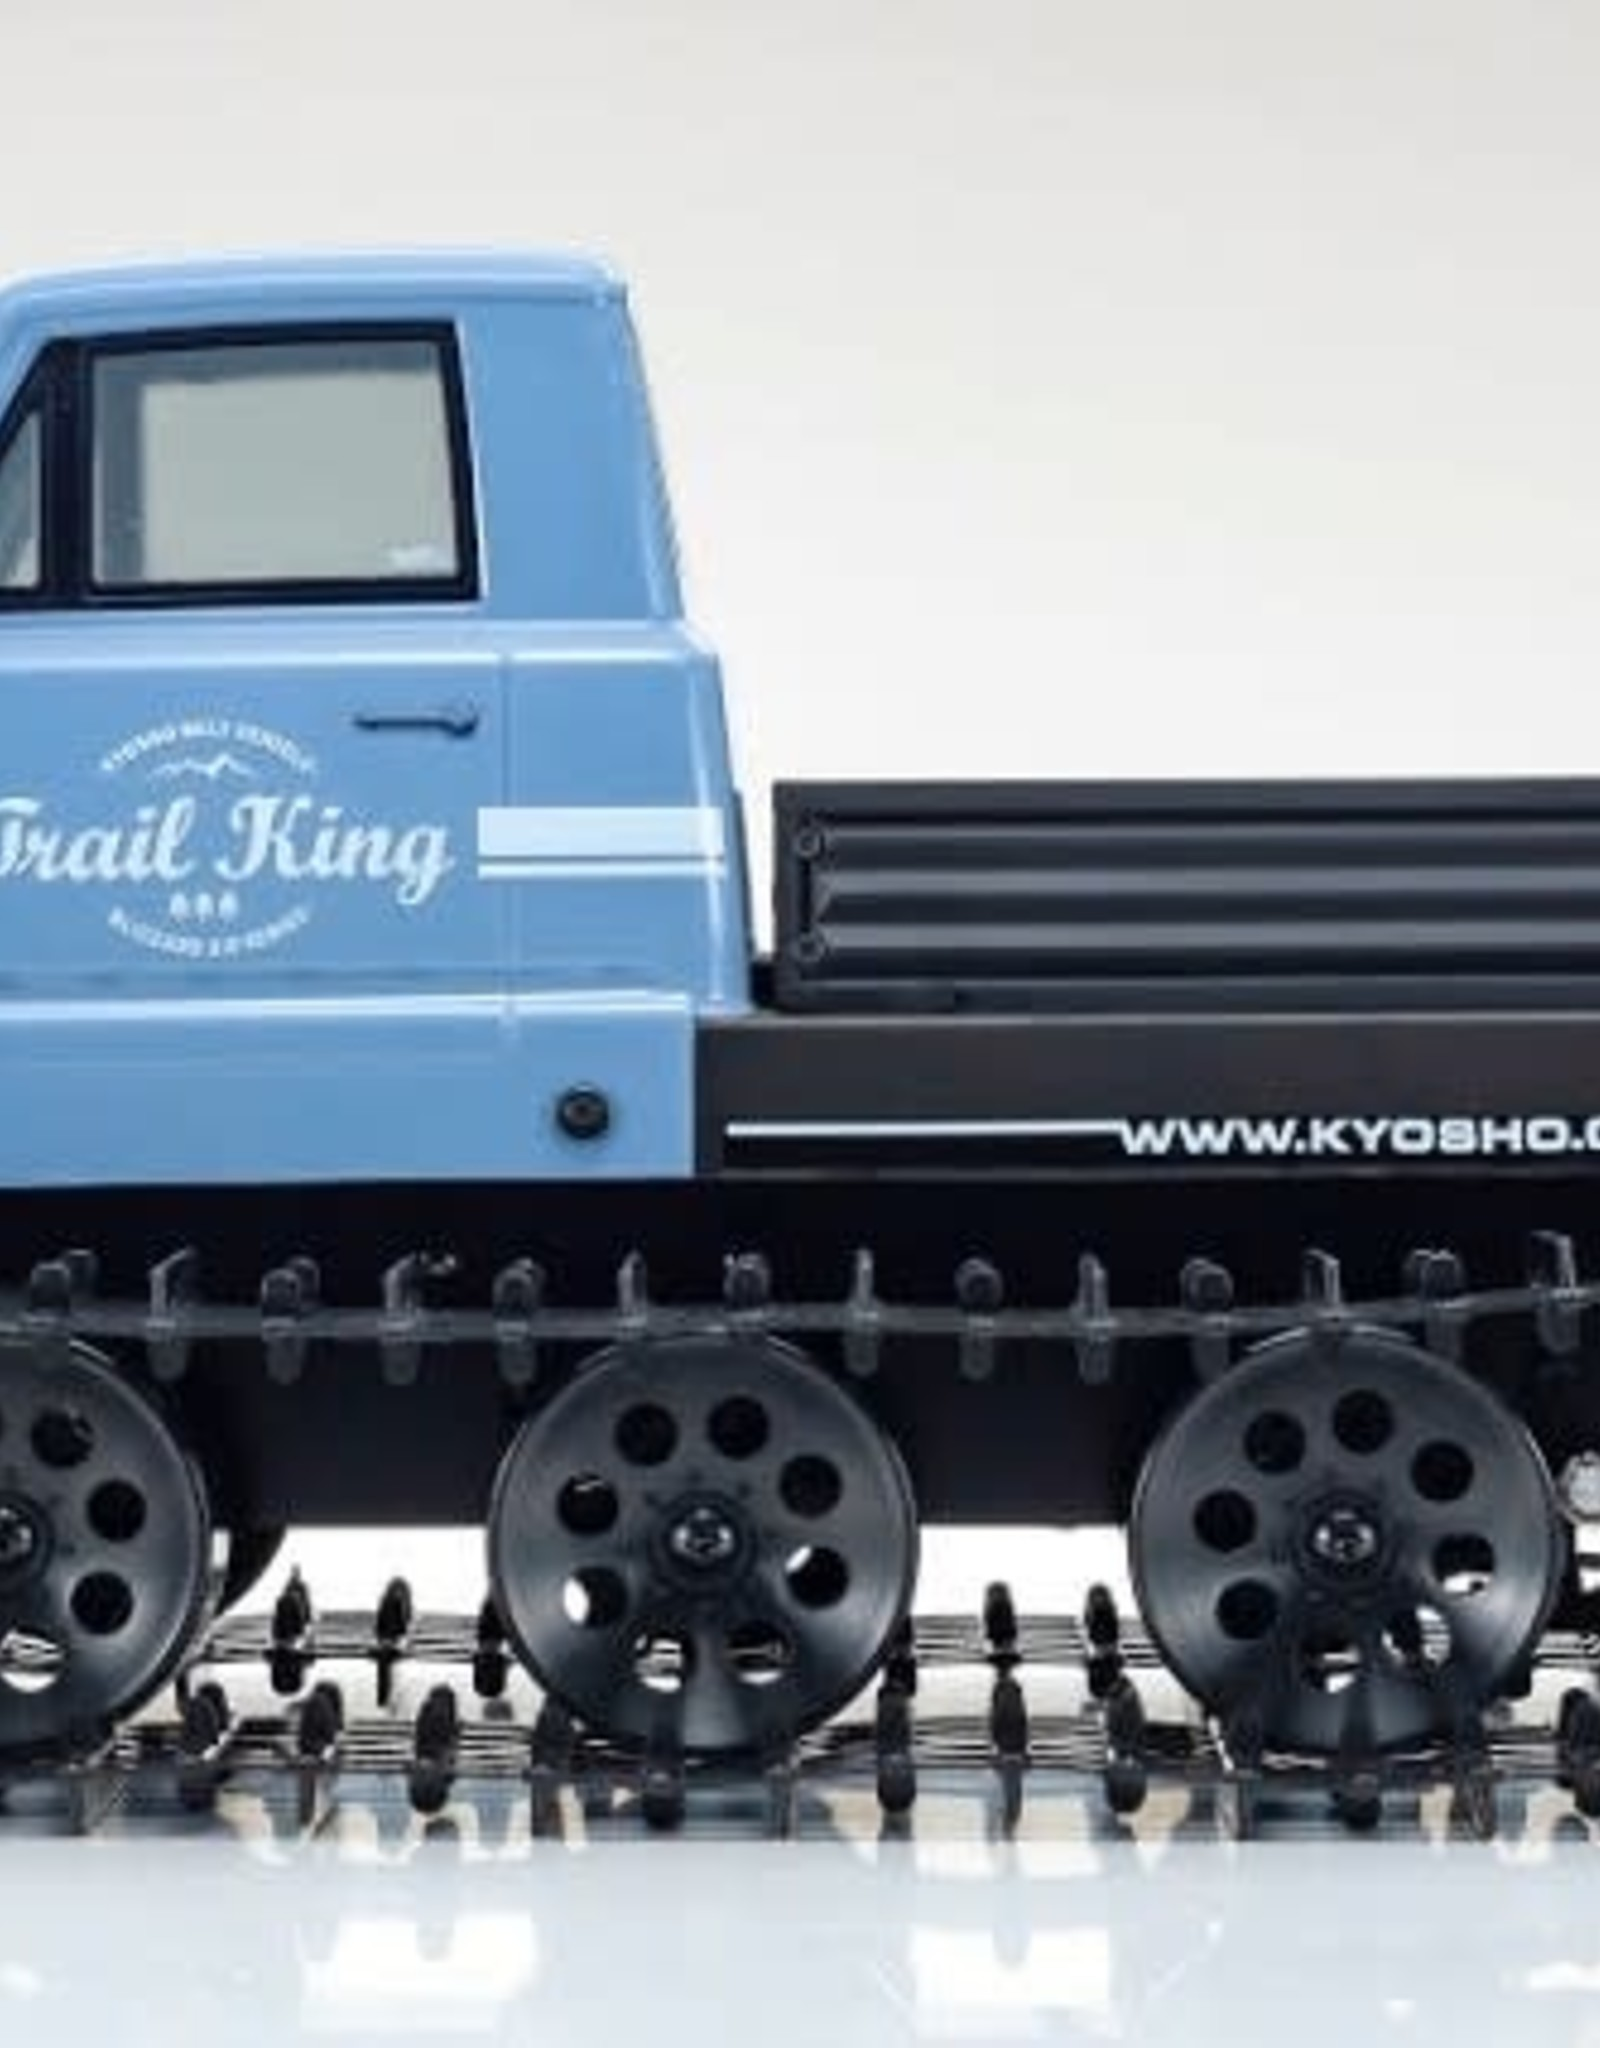 KYOSHO KYO34903T2 1/12 Scale EP Belt Vehicle Readyset Trail King Color Type 2 Blue